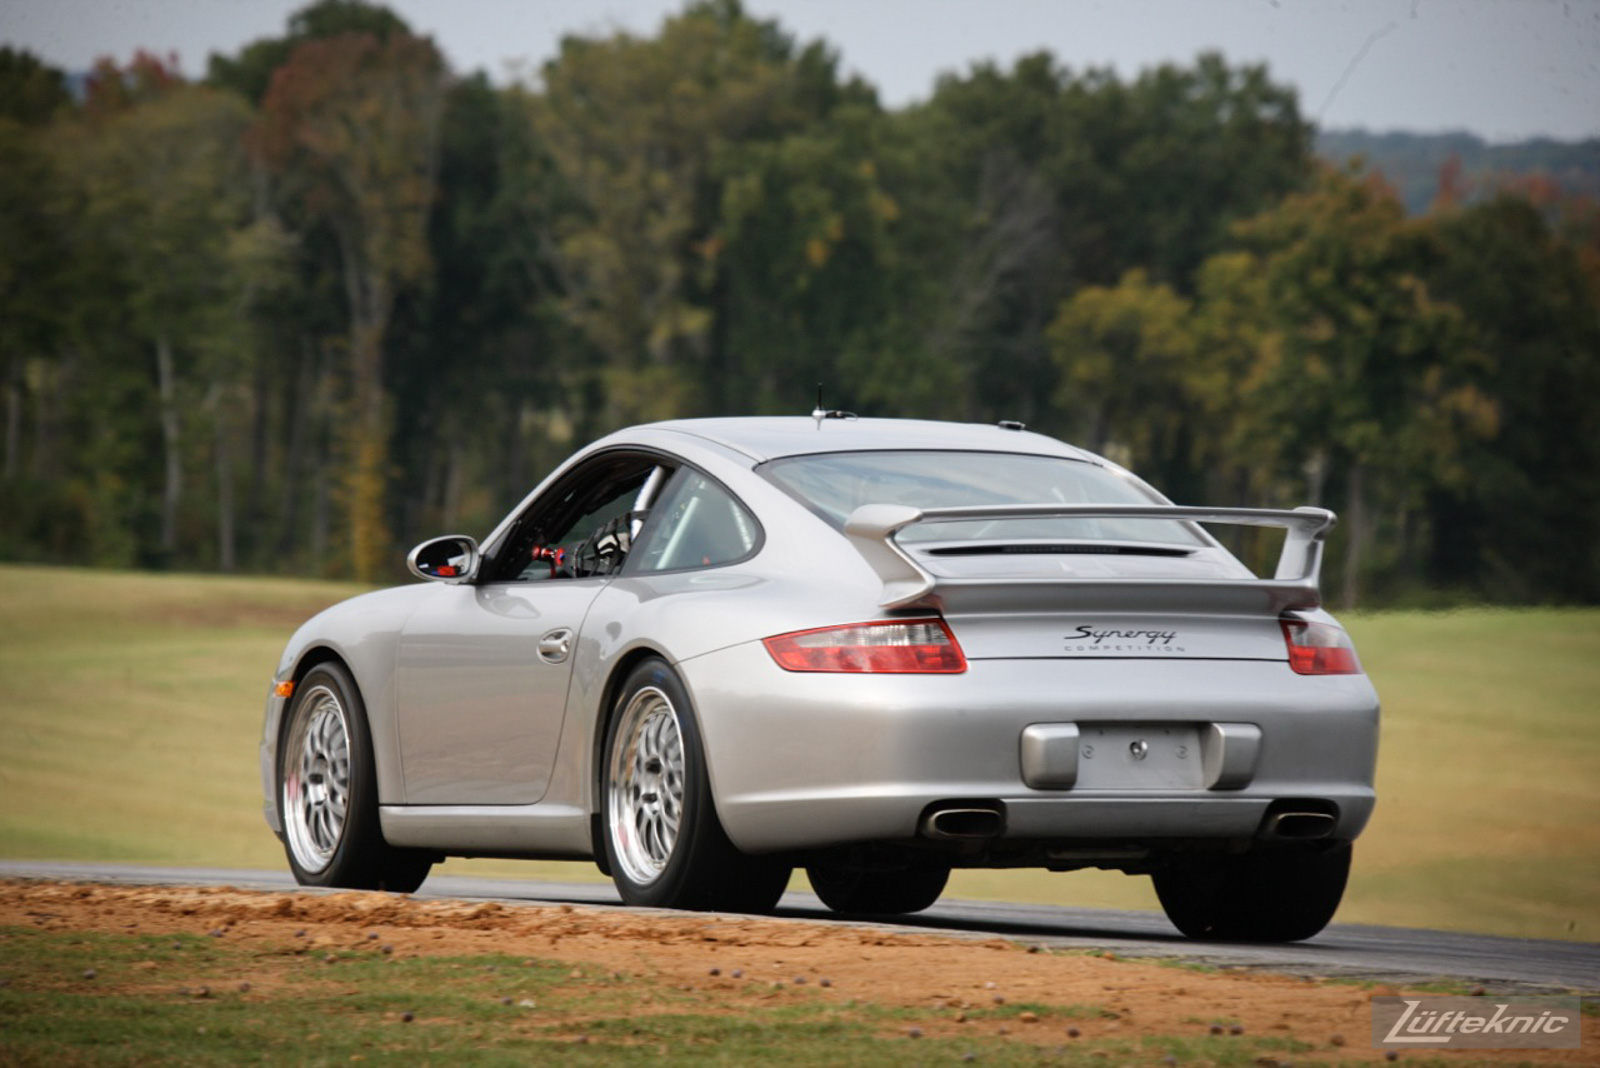 Synergy Racing modified Porsche 911 track car on track.